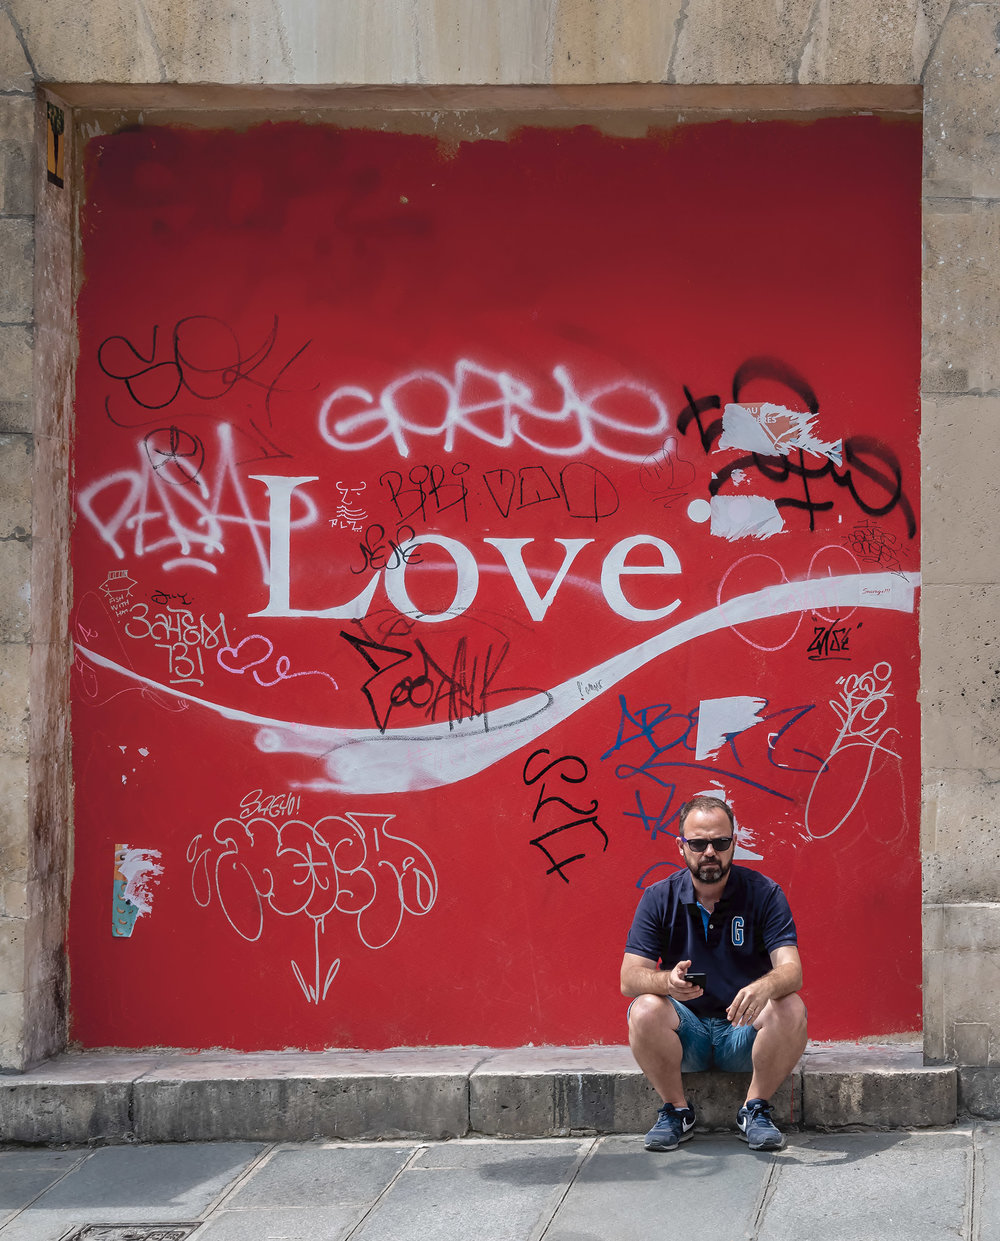 Love_grafiti1982.jpg